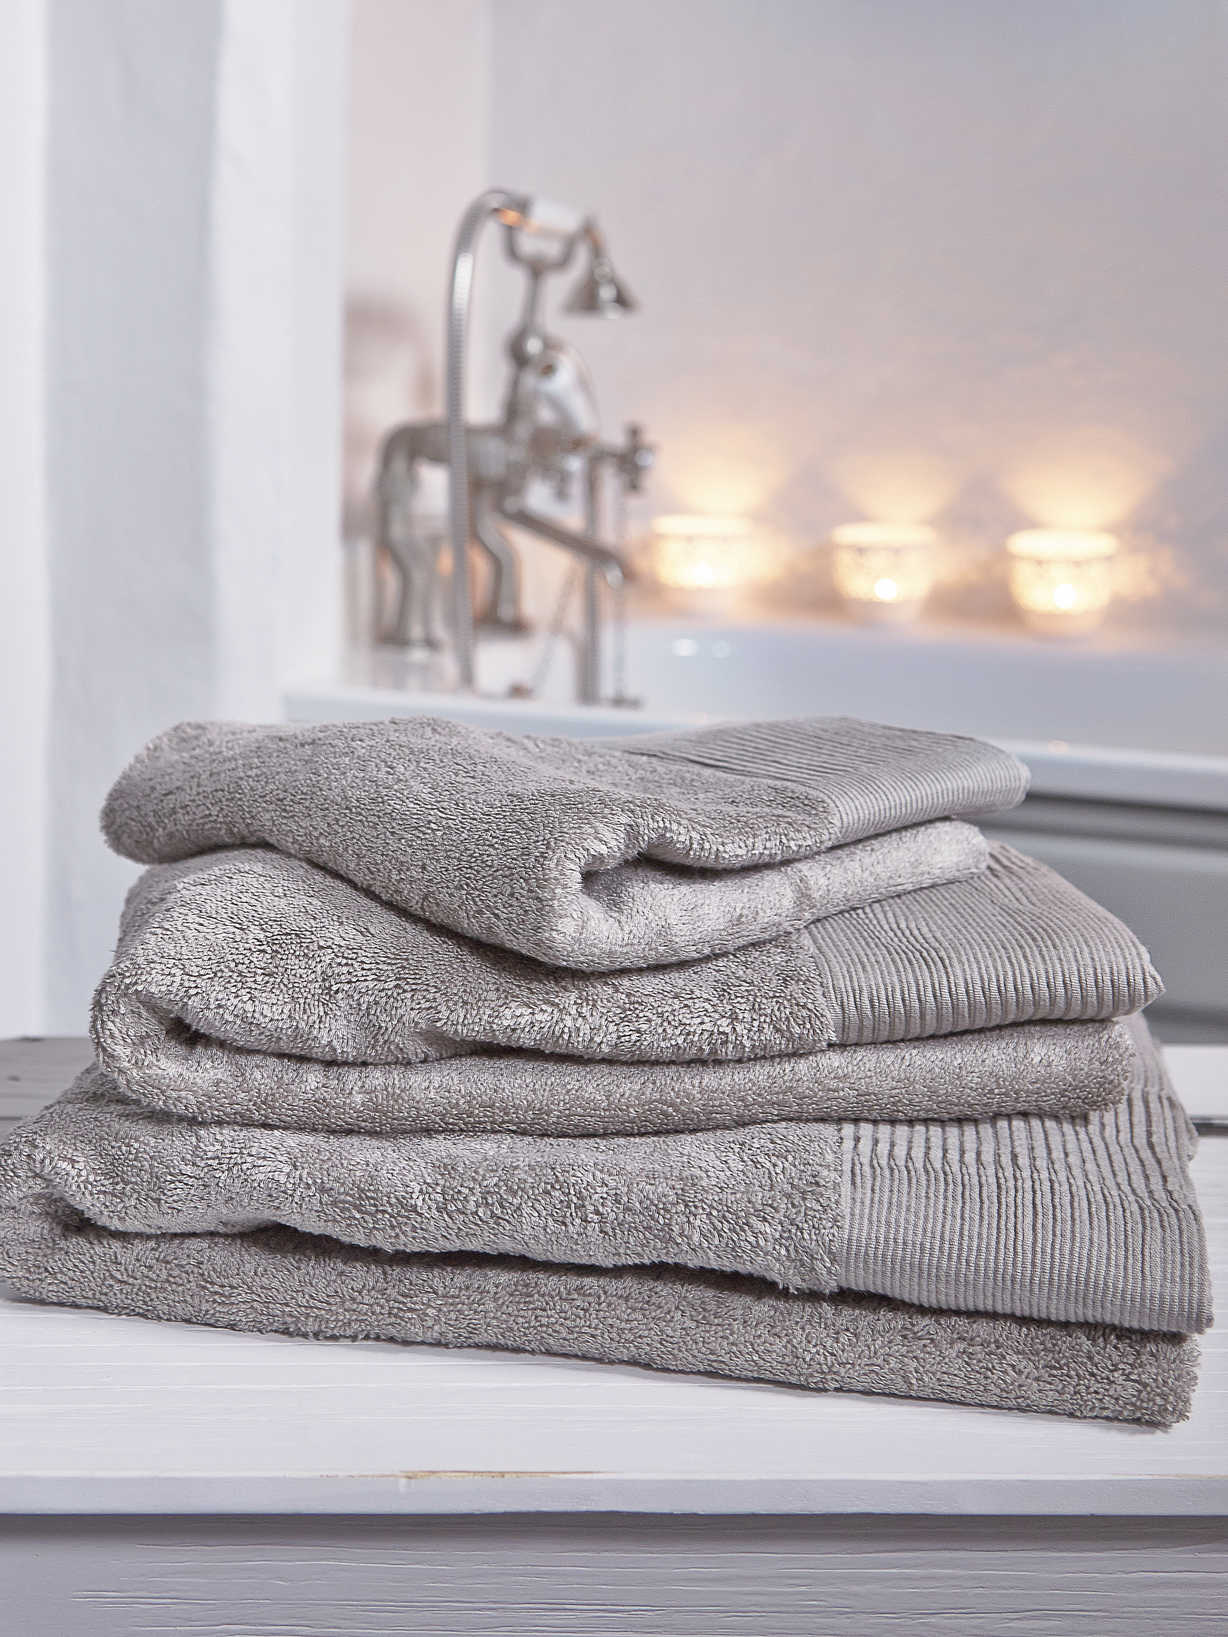 Nordic House Luxurious Soft Towels - Natural